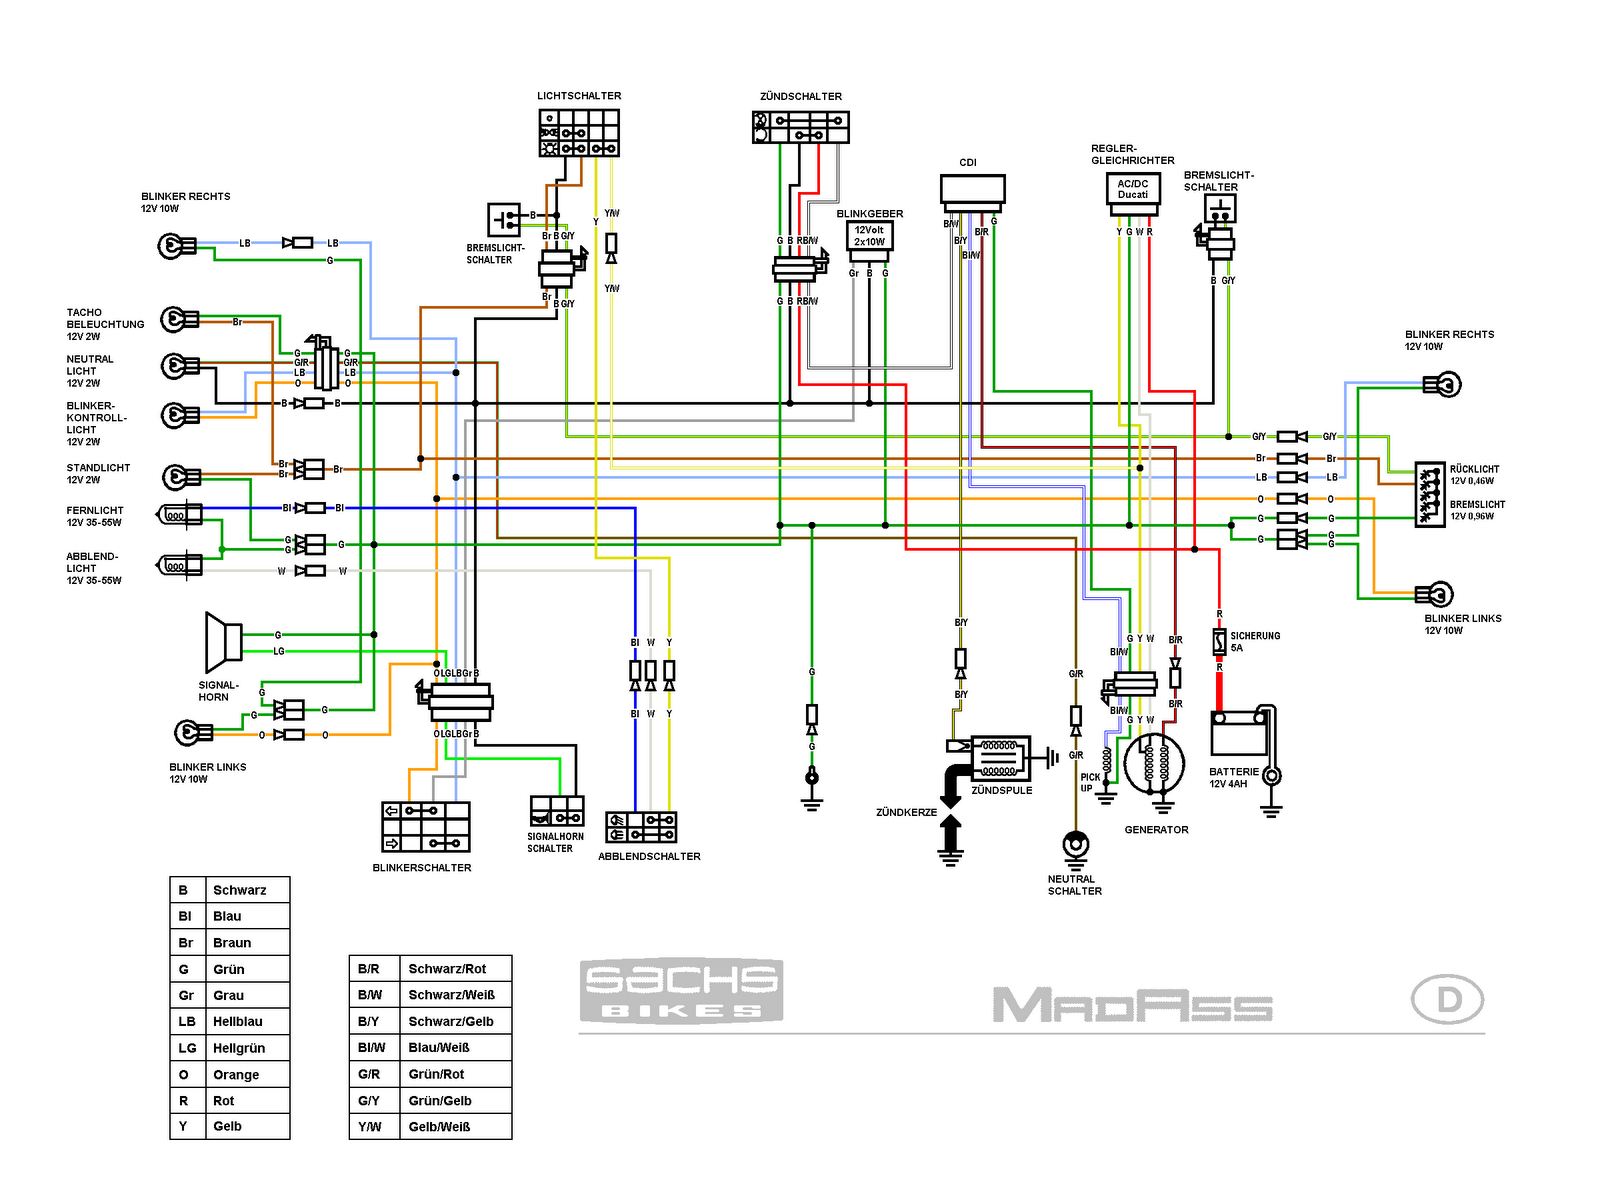 2008 Honda Ridgeline Fuse Box Wiring Diagram For Free Moreover Likewise Maxresdefault Together With Besides 1992 Prelude Air Conditioner Circuit Thumb In